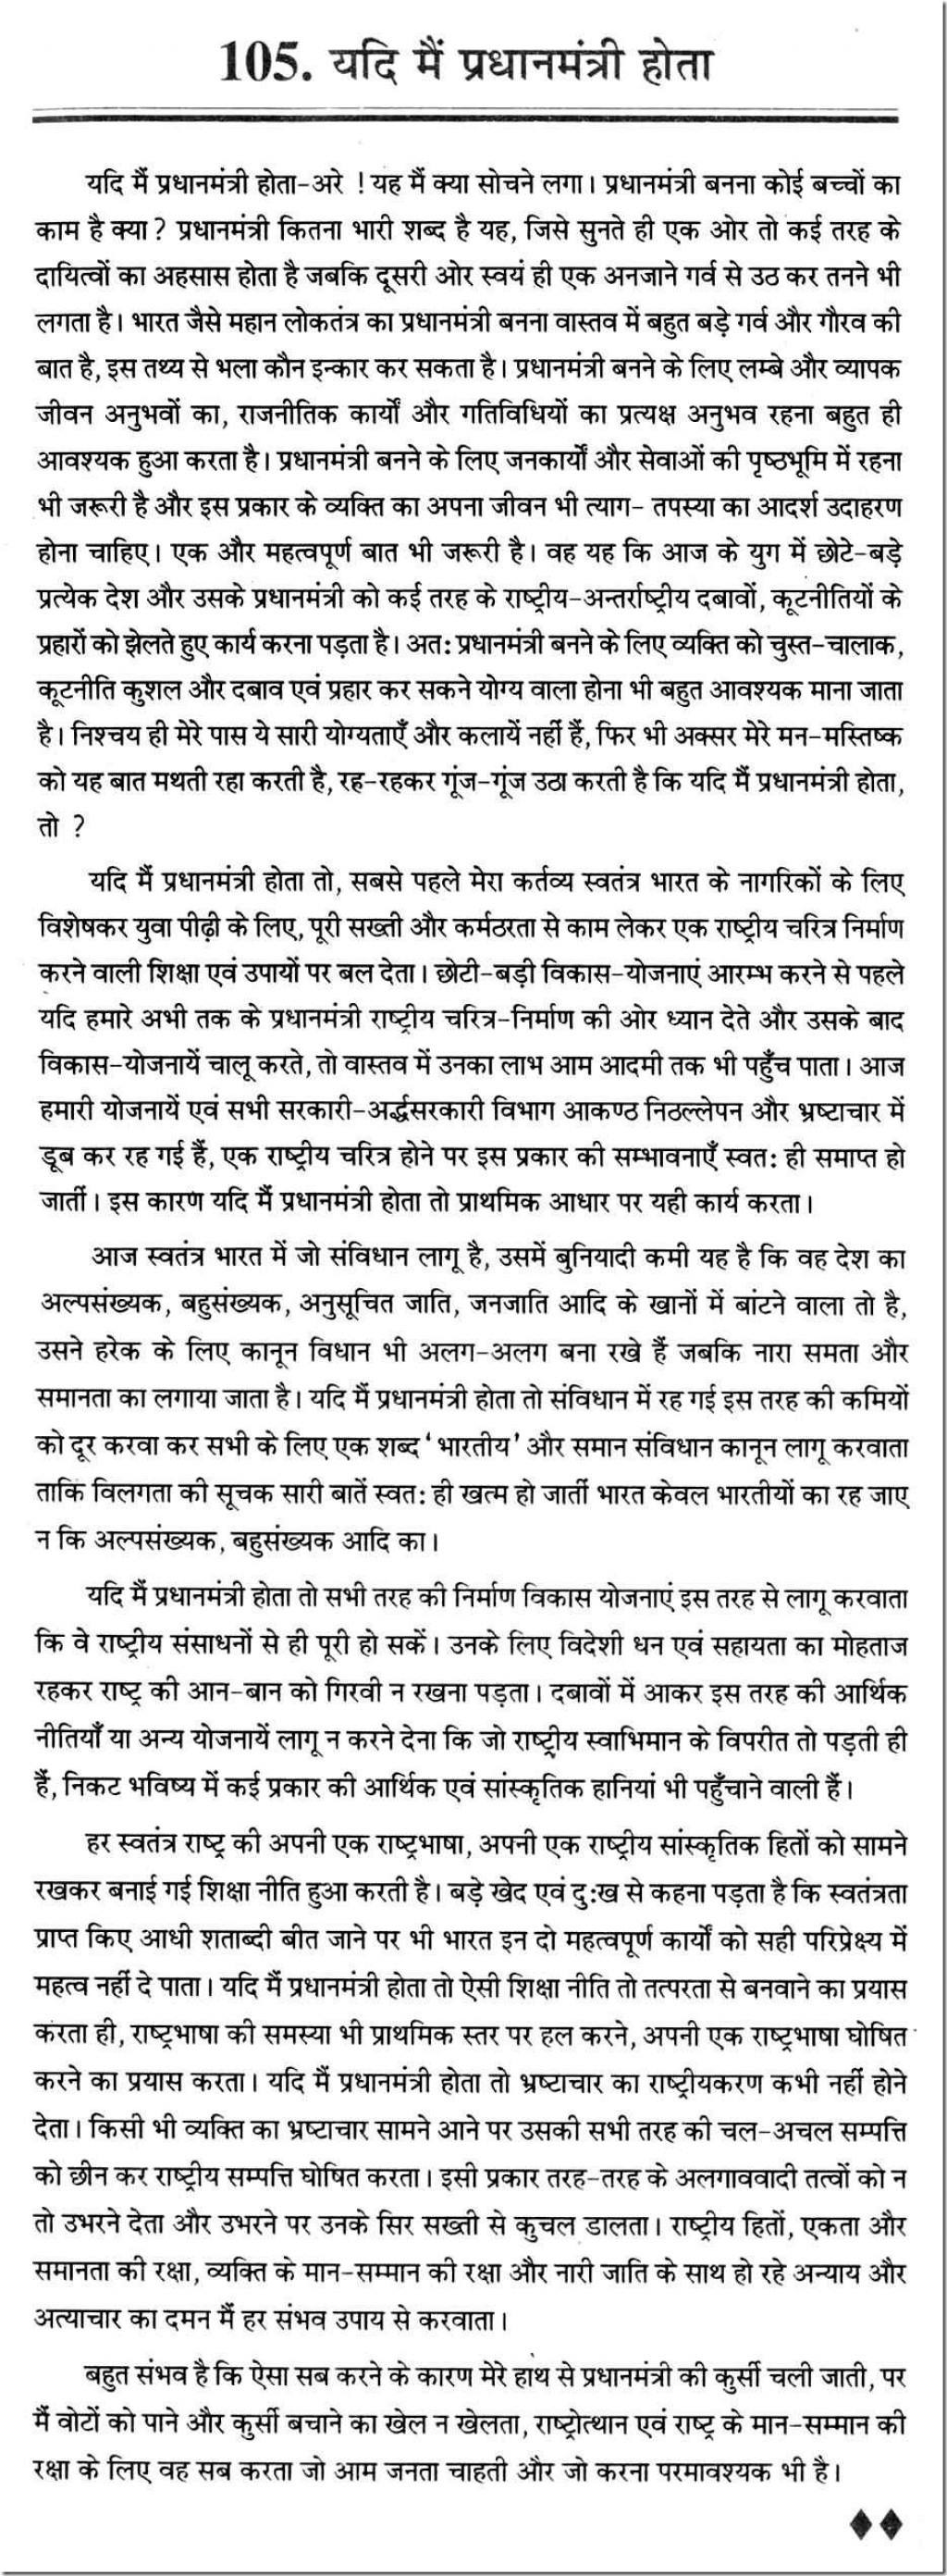 010 Prime Minister Essay Term Paper Writing Service Cmcourseworkhwja Writings Reviews 10106 Outstanding On Narendra Modi In Marathi First Of India Hindi Large